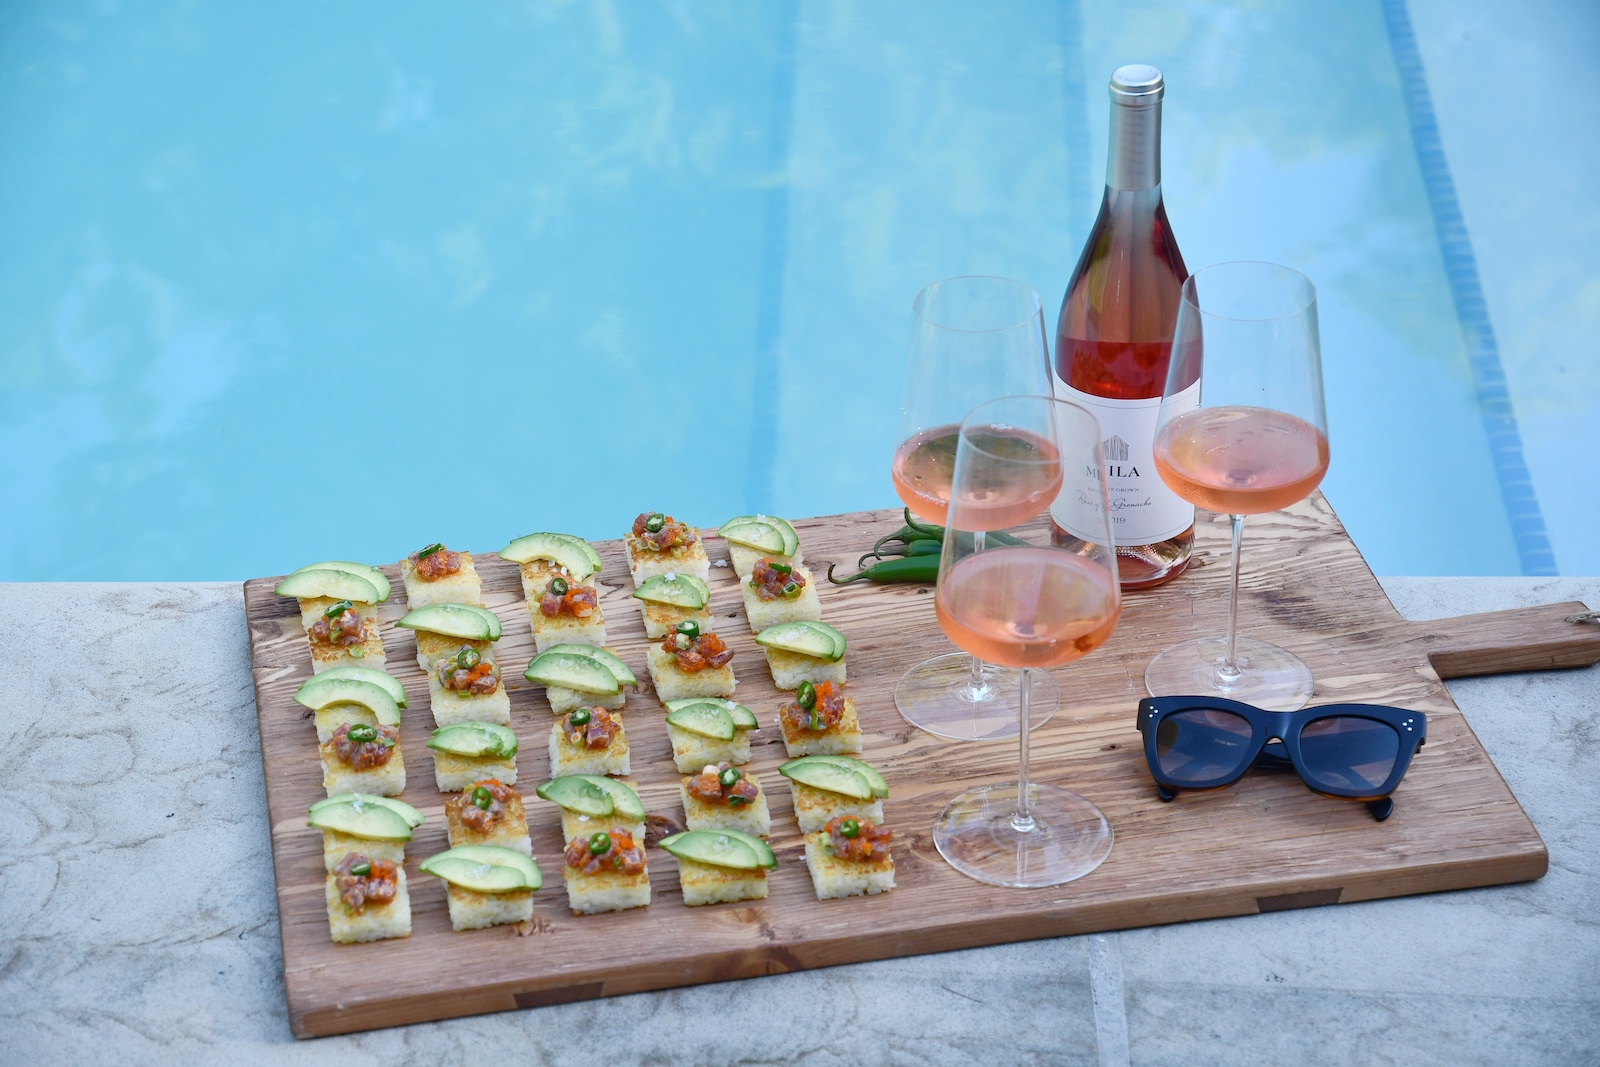 Poolside platter: Rice cakes and Mila Rosé